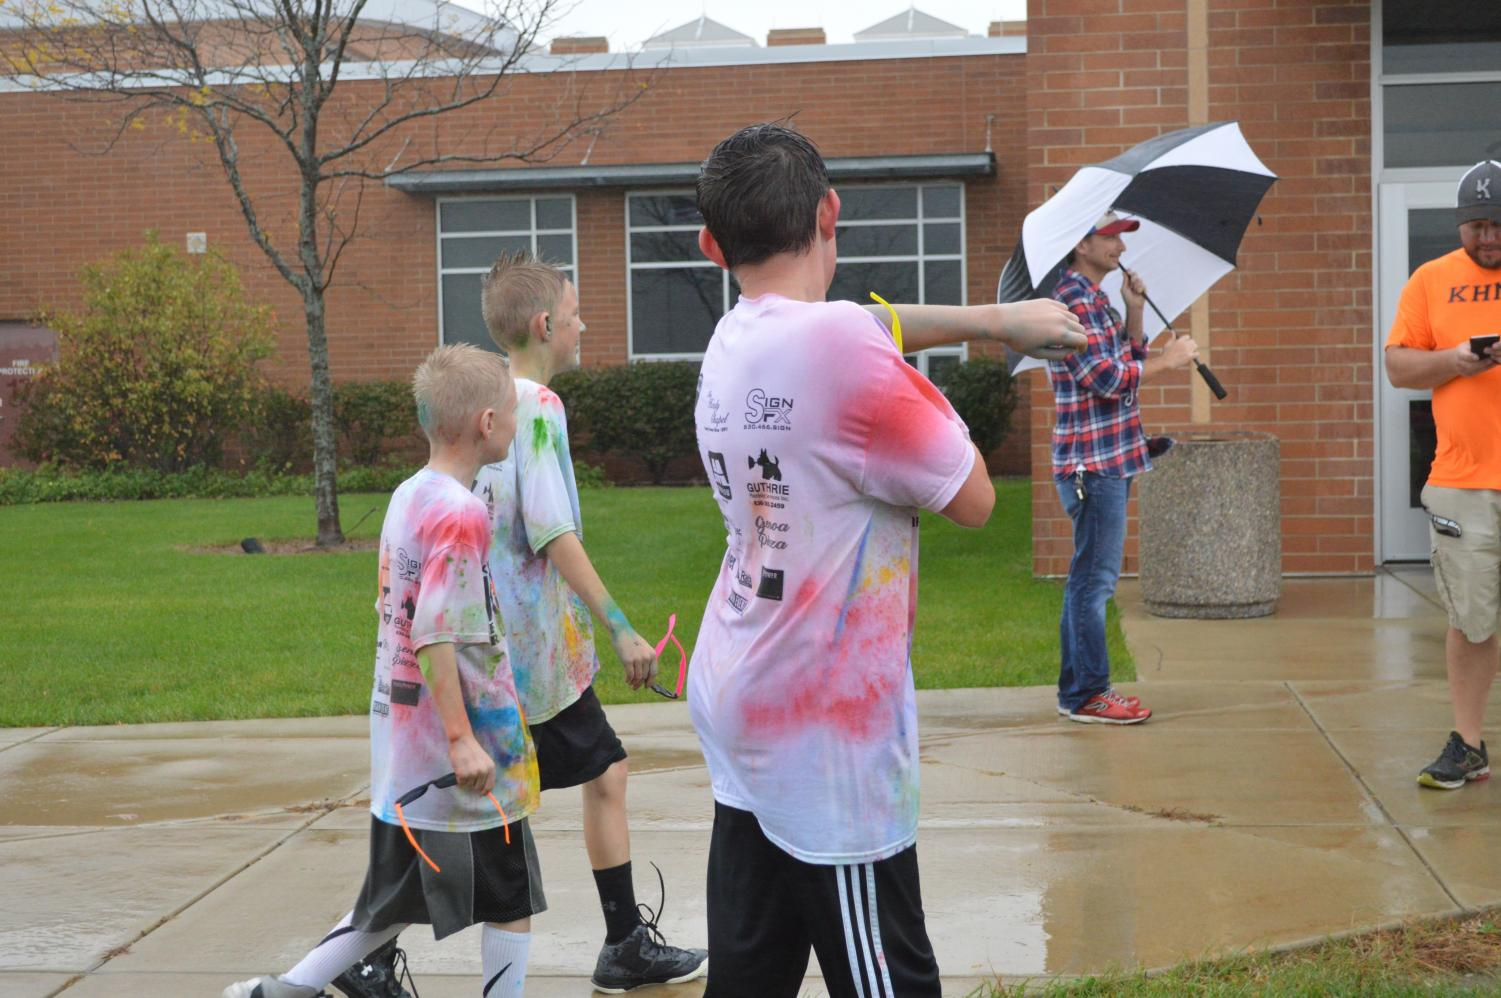 Kaneland community members ran through the rain to participate in the Kolor Run